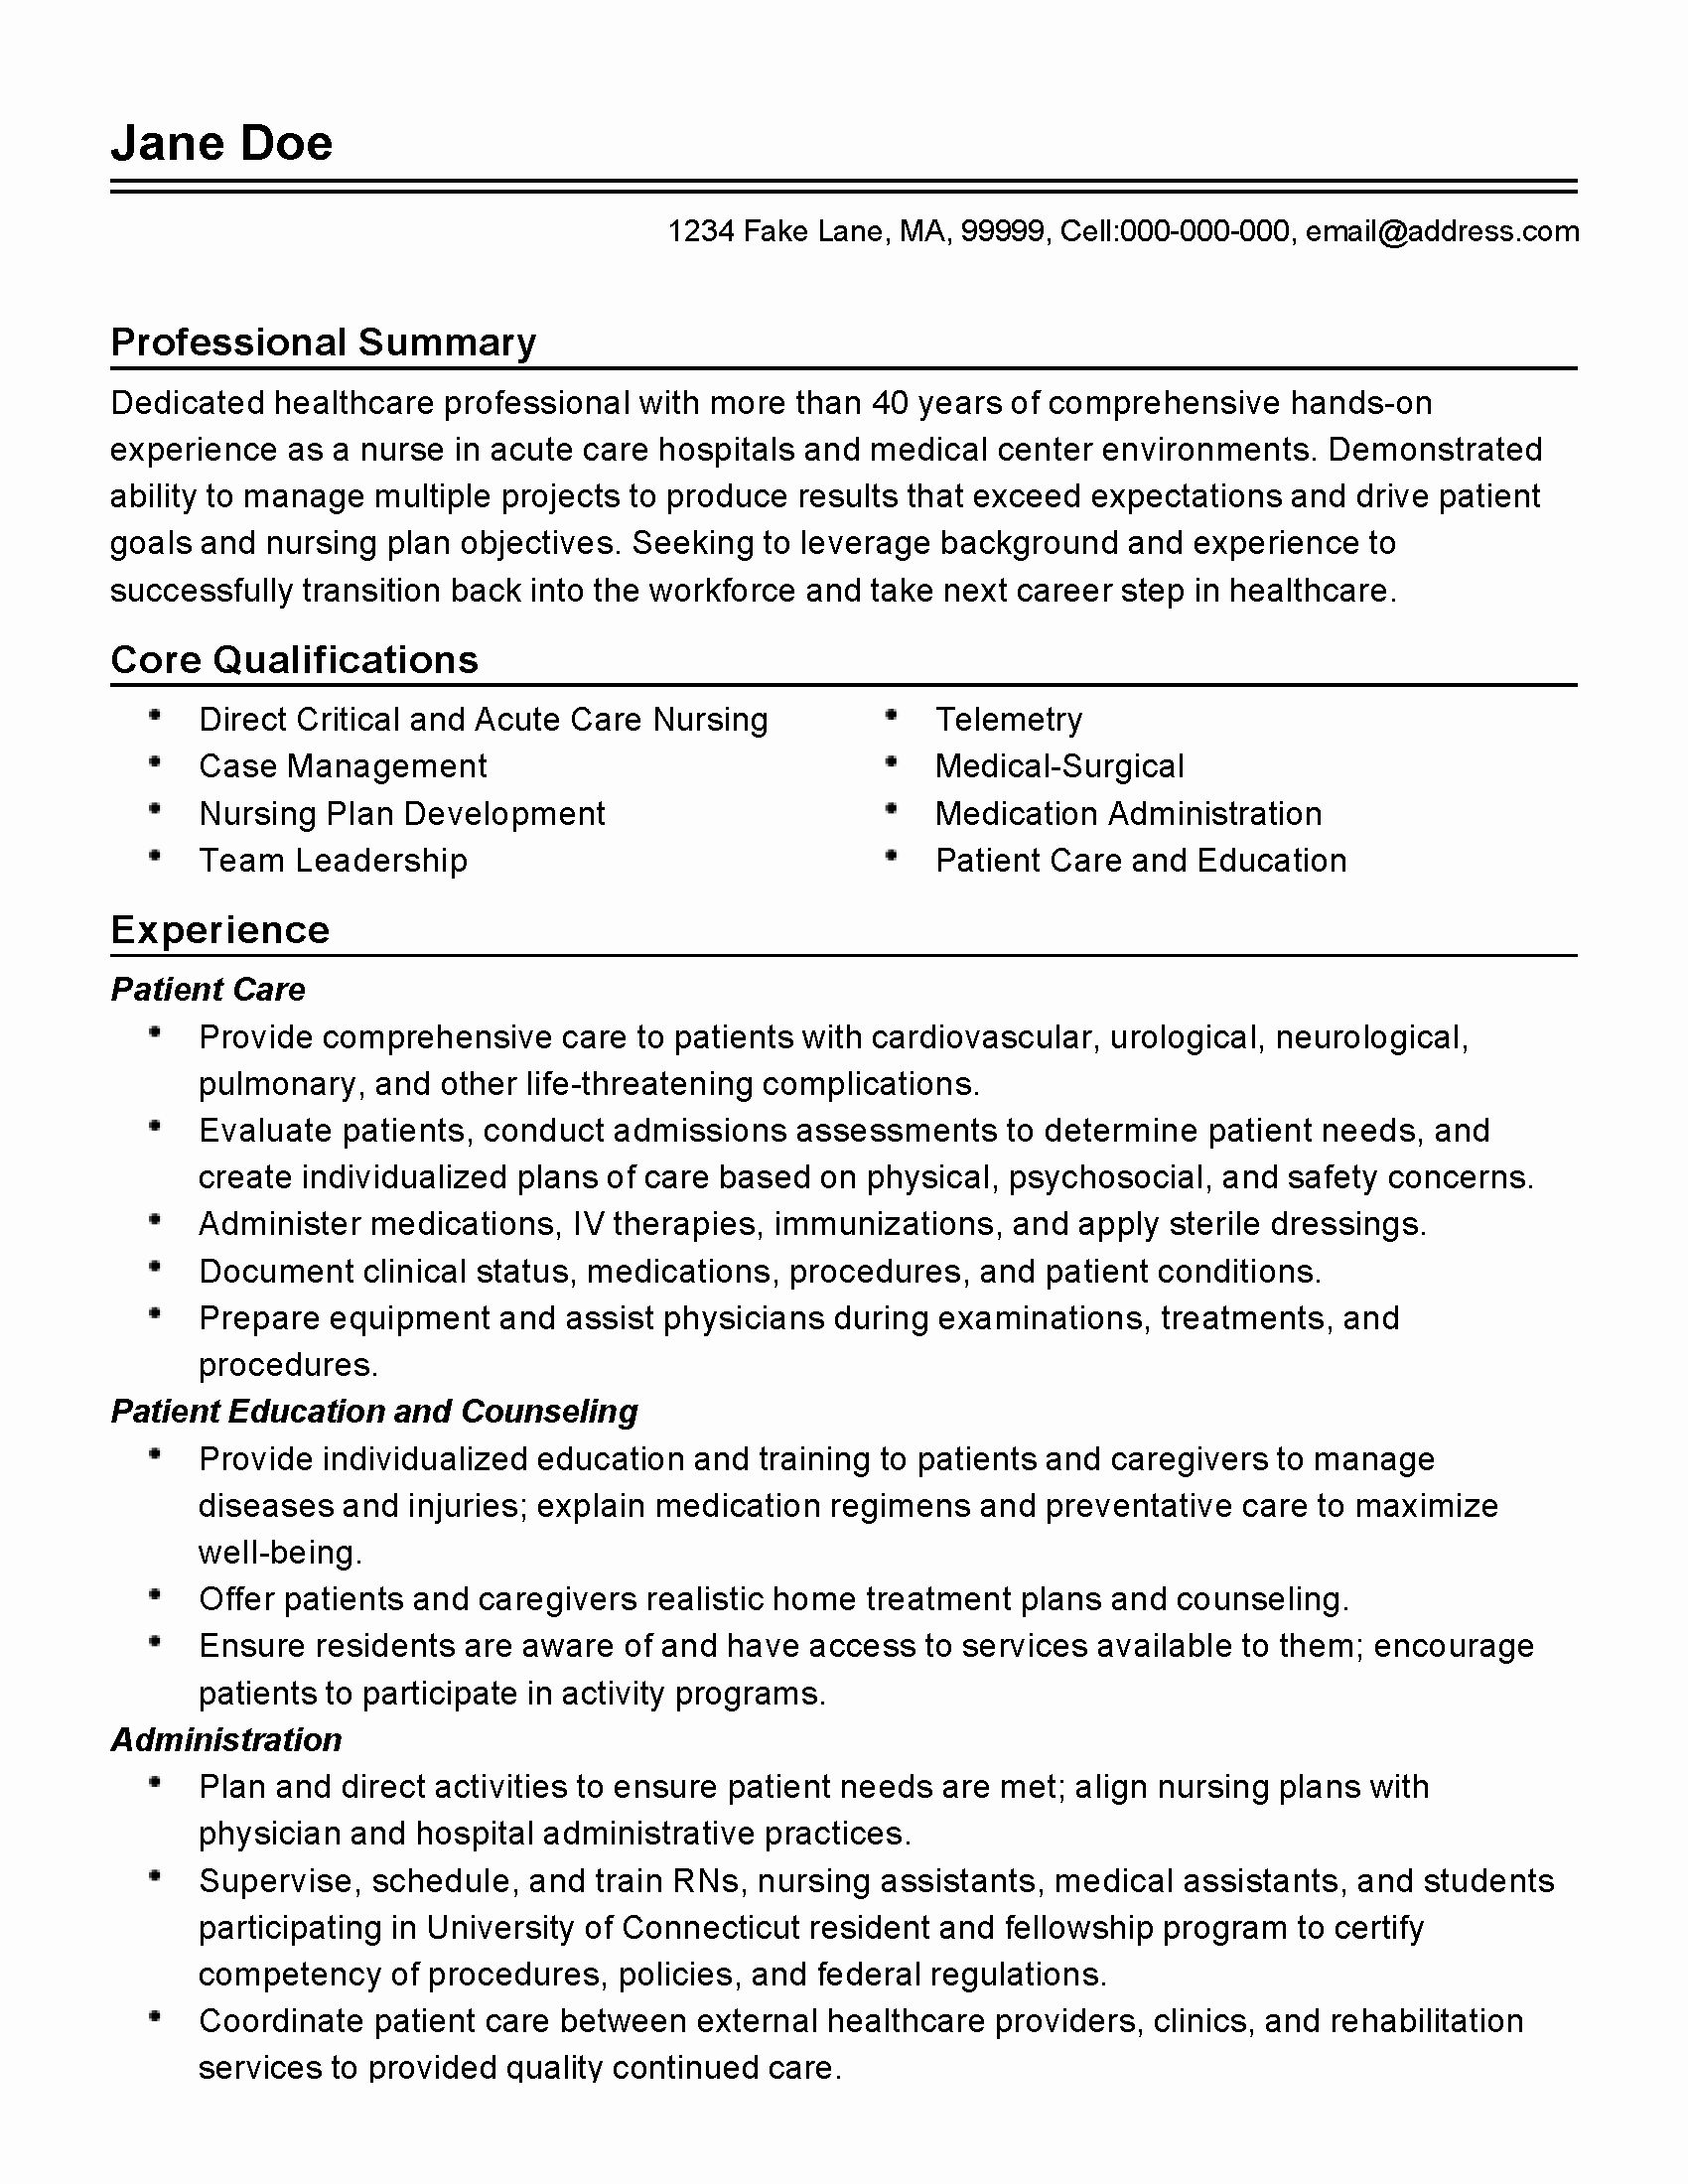 30 Case Management Care Plan Template in 2020 (With images ...